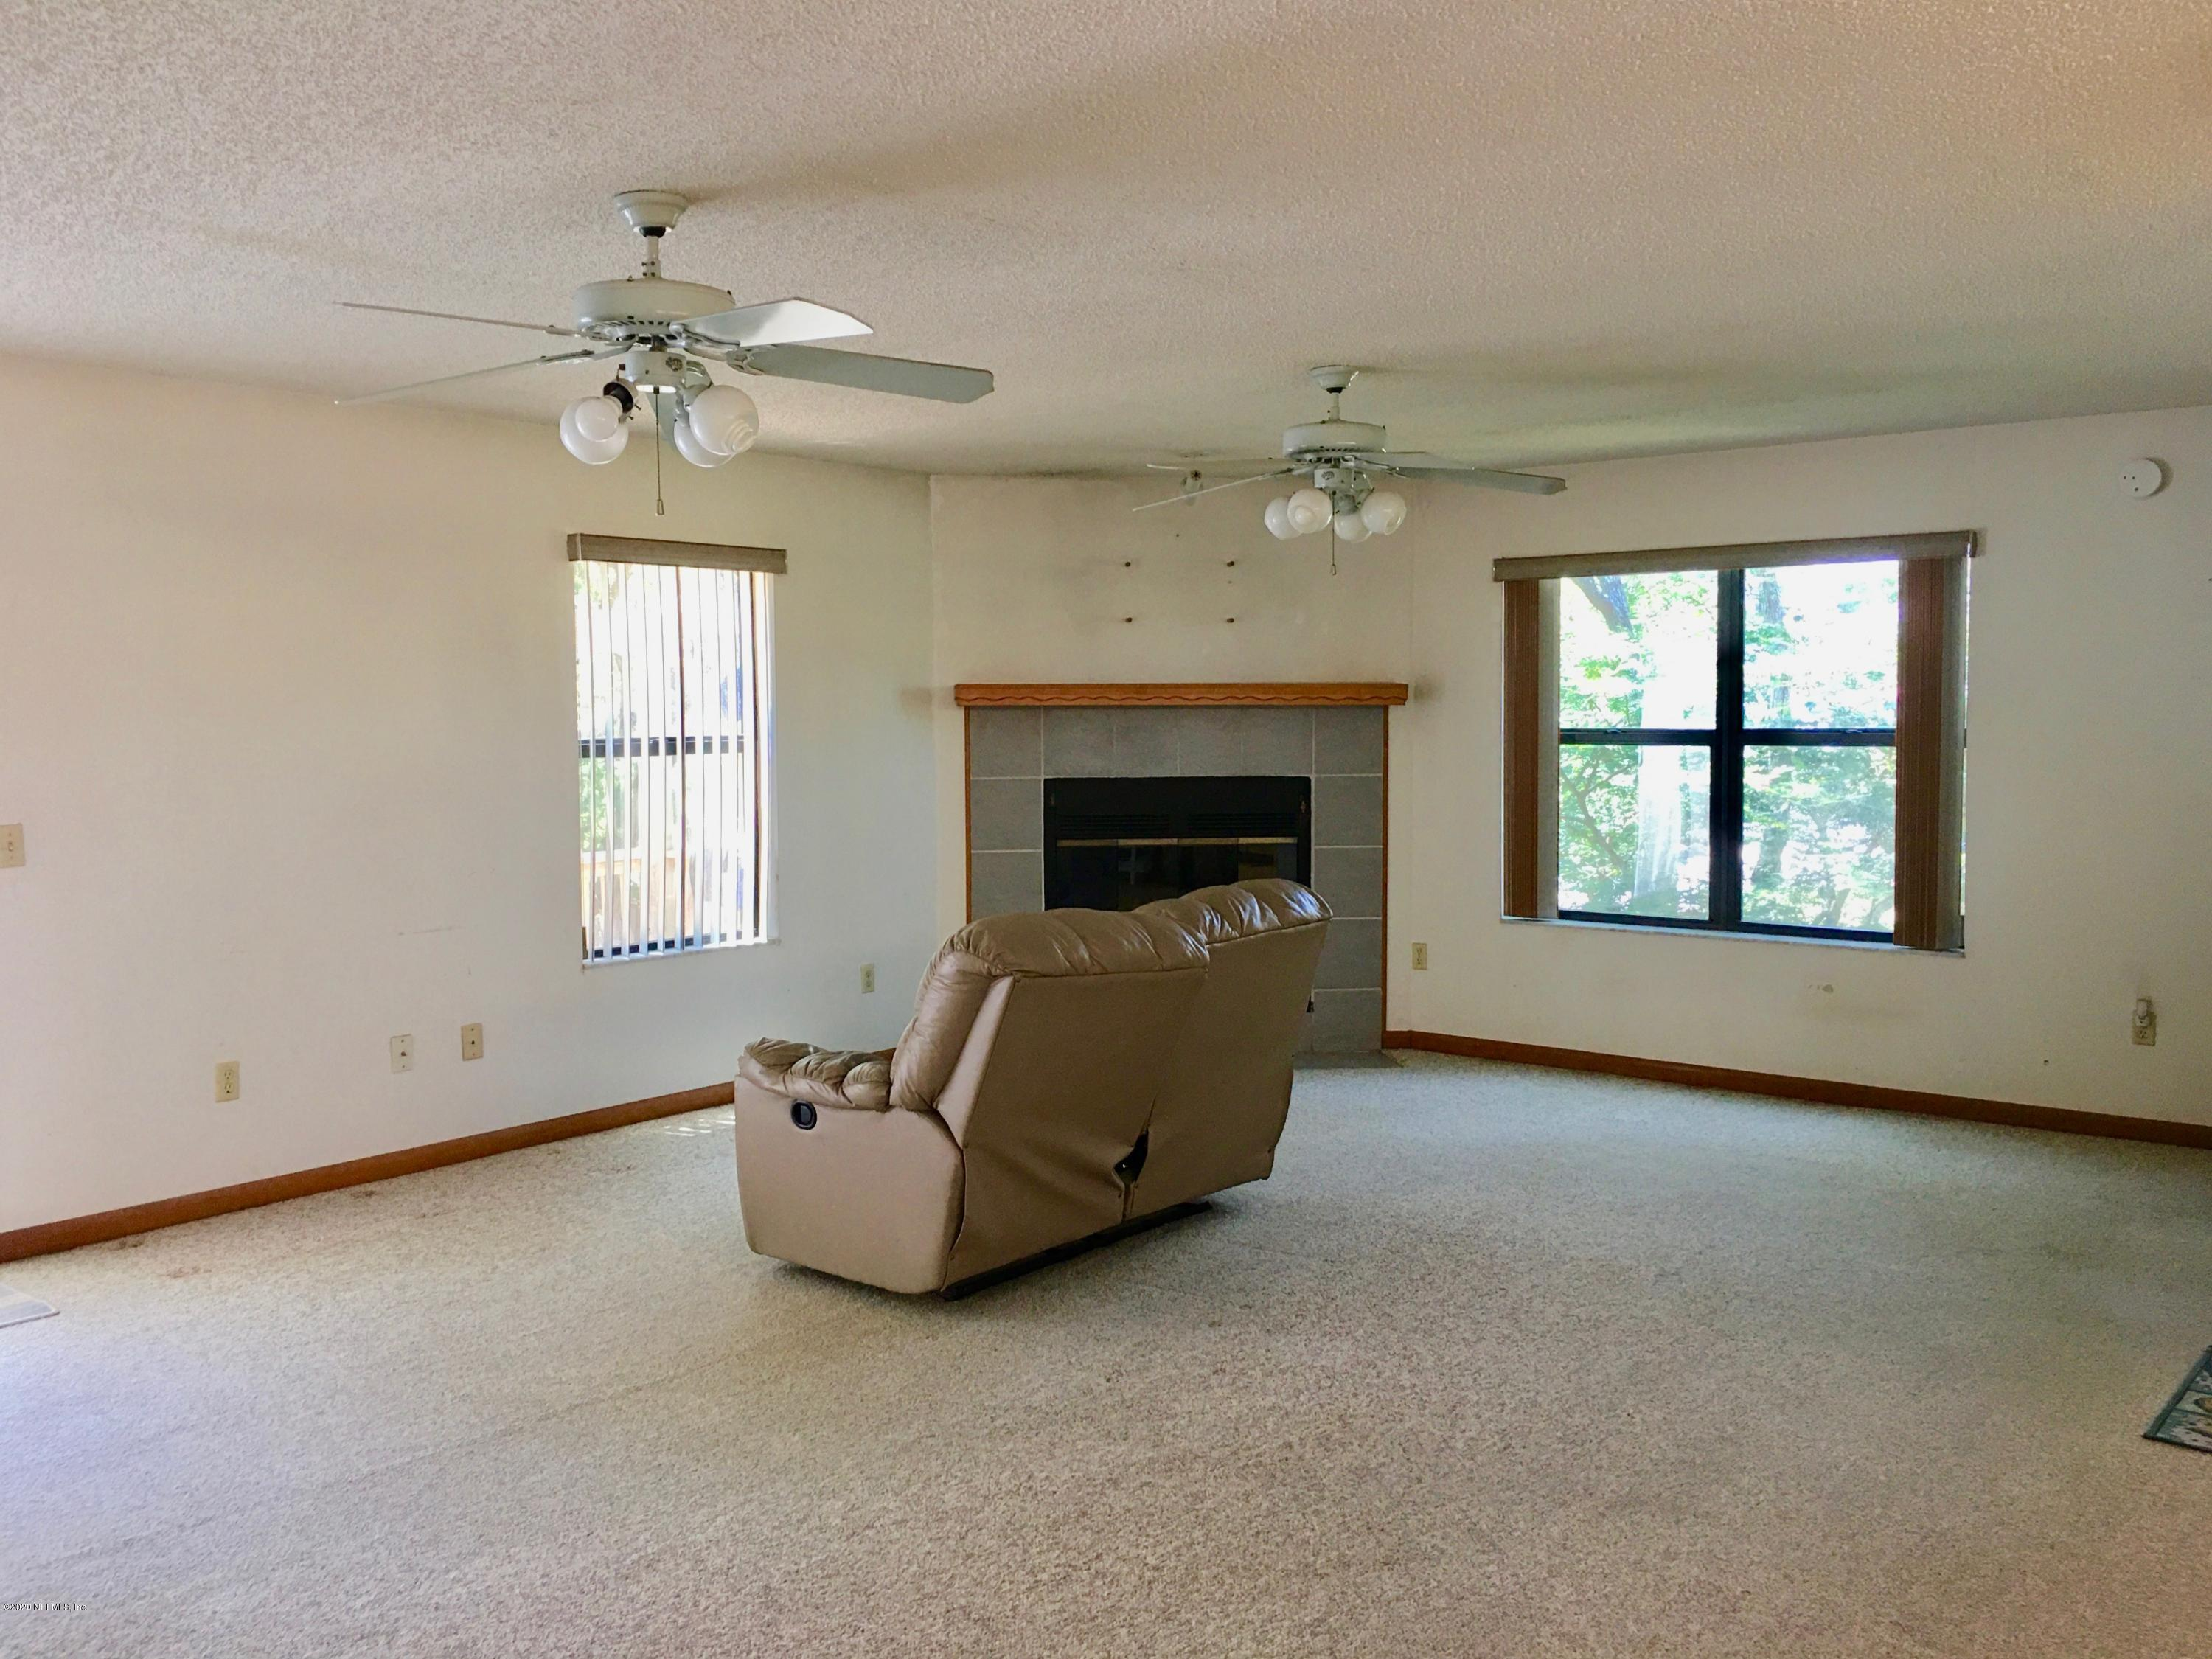 505 20TH, ST AUGUSTINE, FLORIDA 32084, 3 Bedrooms Bedrooms, ,2 BathroomsBathrooms,Residential,For sale,20TH,1059444